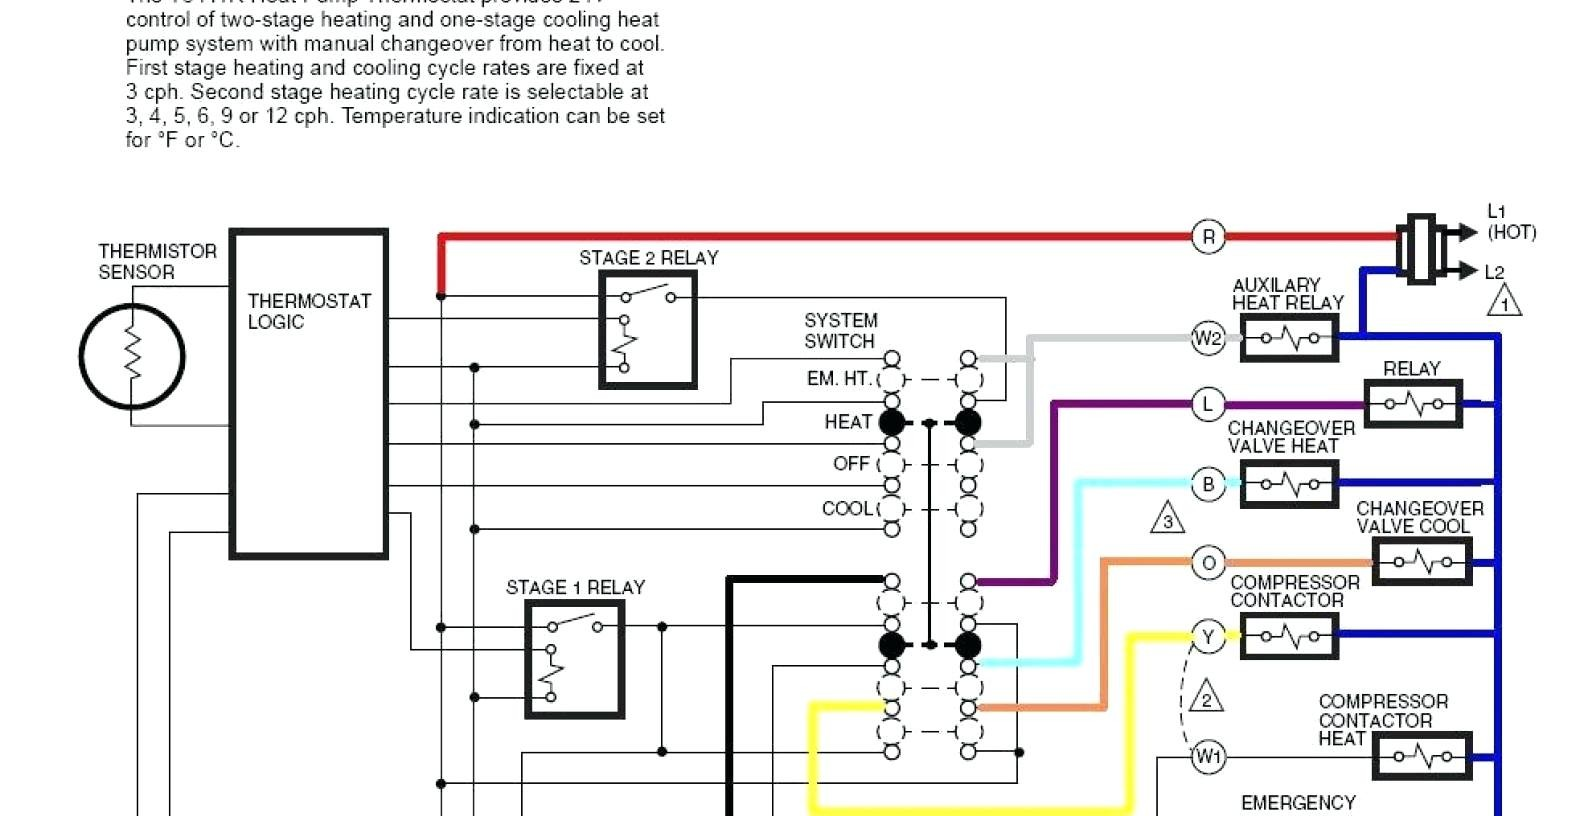 American Standard Air Handler Wiring Diagram from mainetreasurechest.com